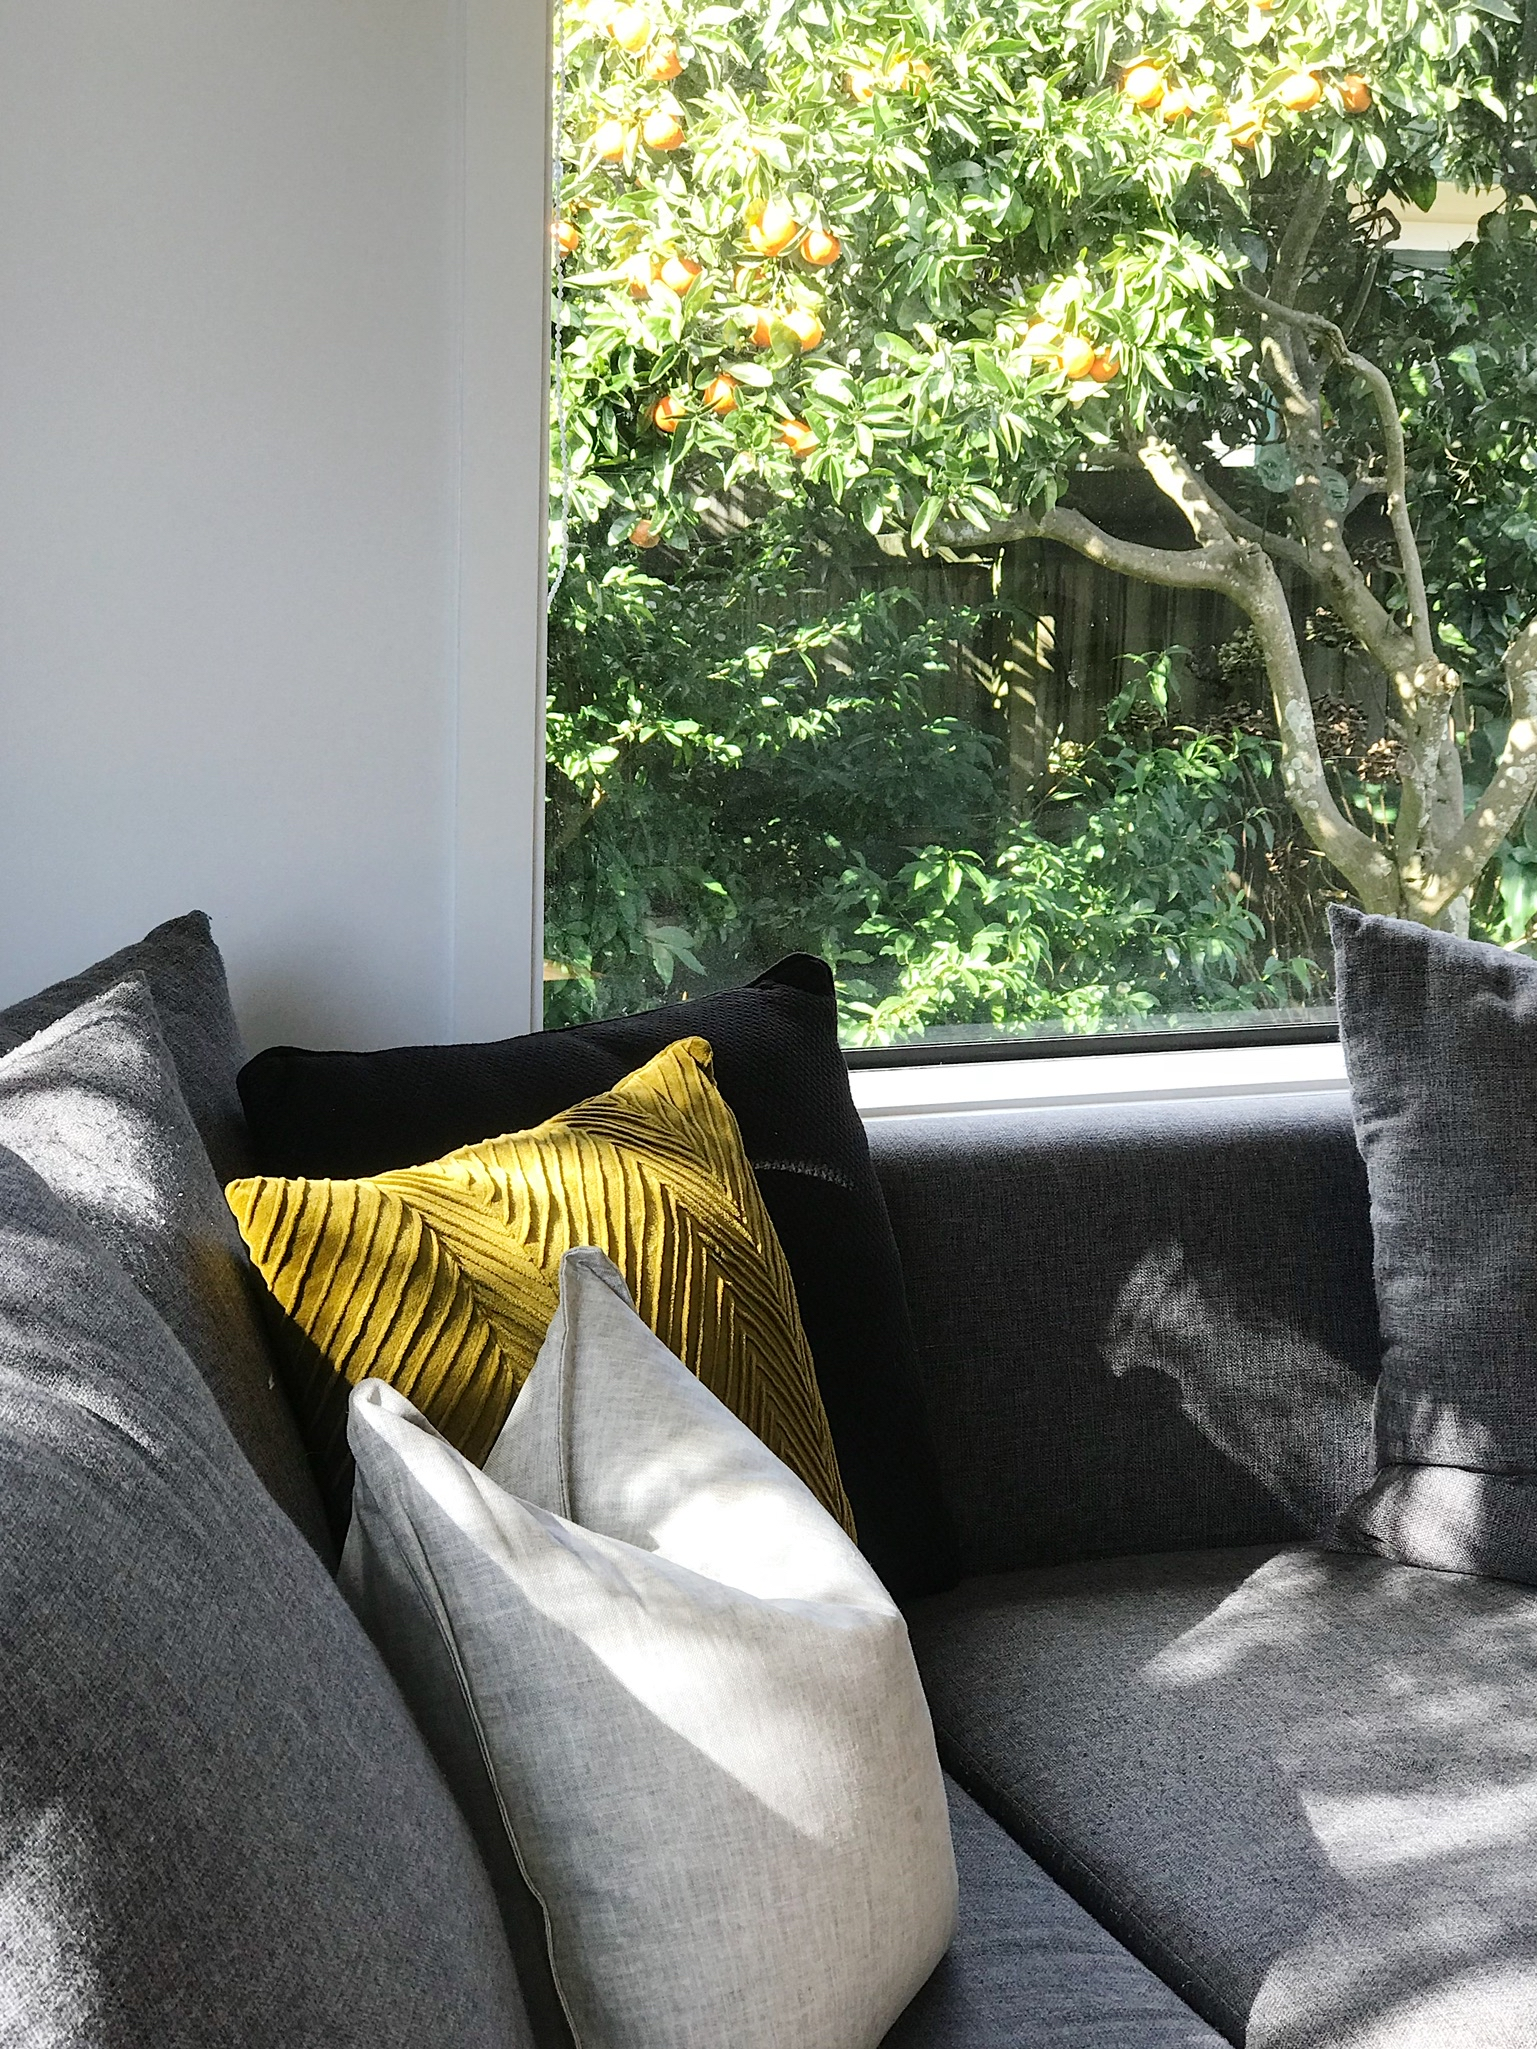 Pearson + Project The Reno Race The Rookies Lounge Tawa Floor Small Space Lounge Cushions Couch.jpg